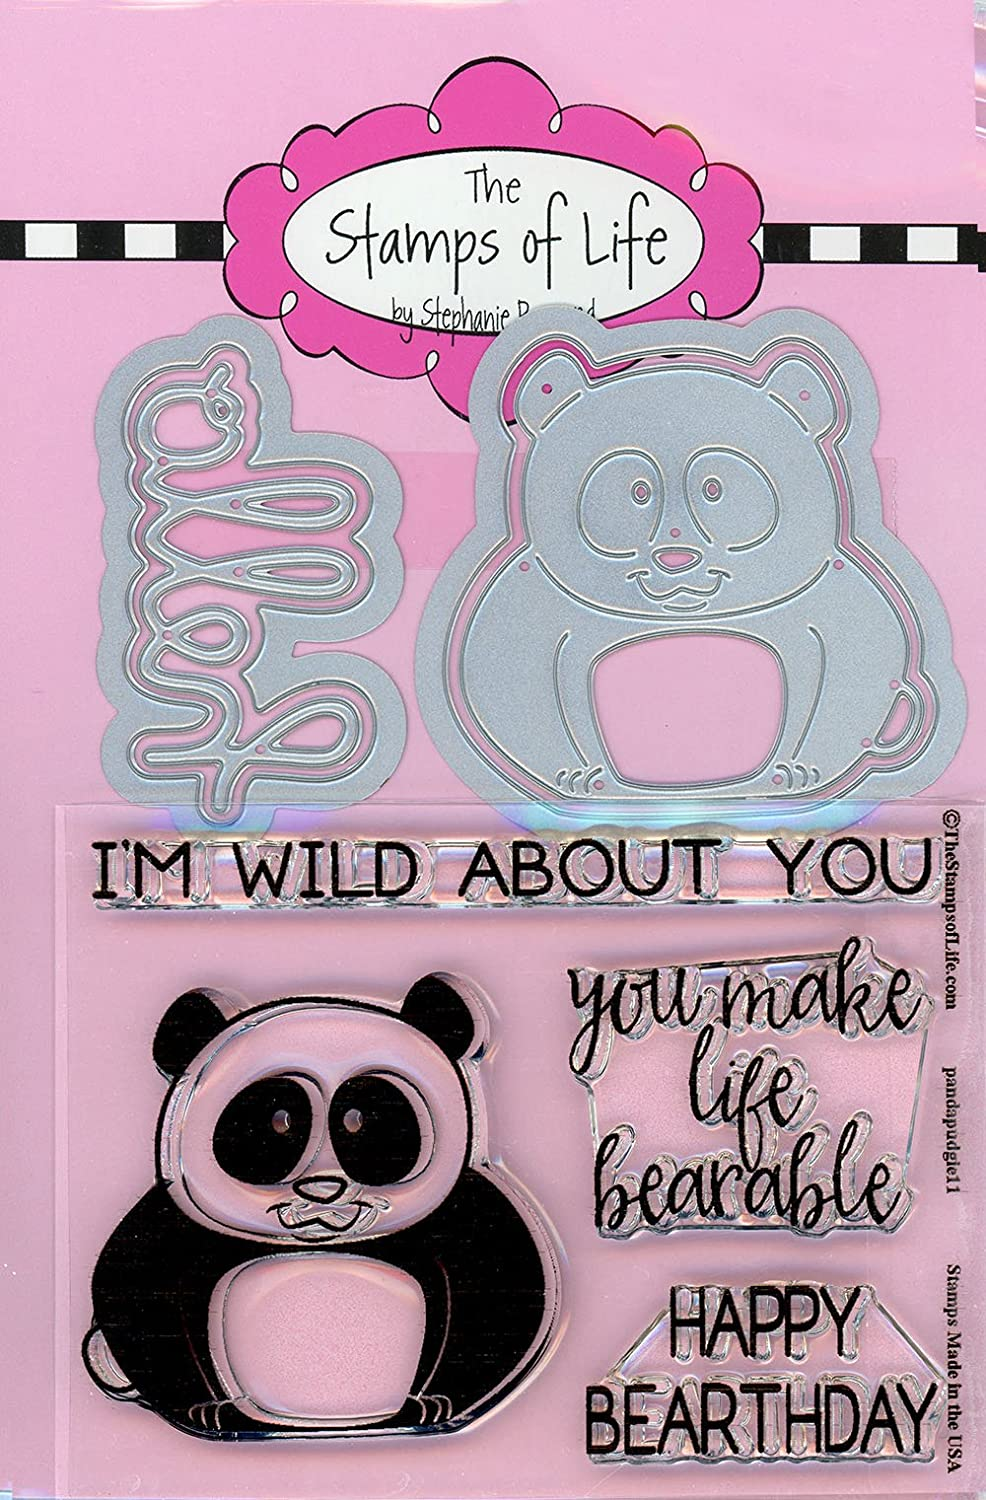 Animal Panda Stamp and Die Combo Pack for Card-Making and Scrapbooking Supplies by The Stamps of Life - Panda Pudgie